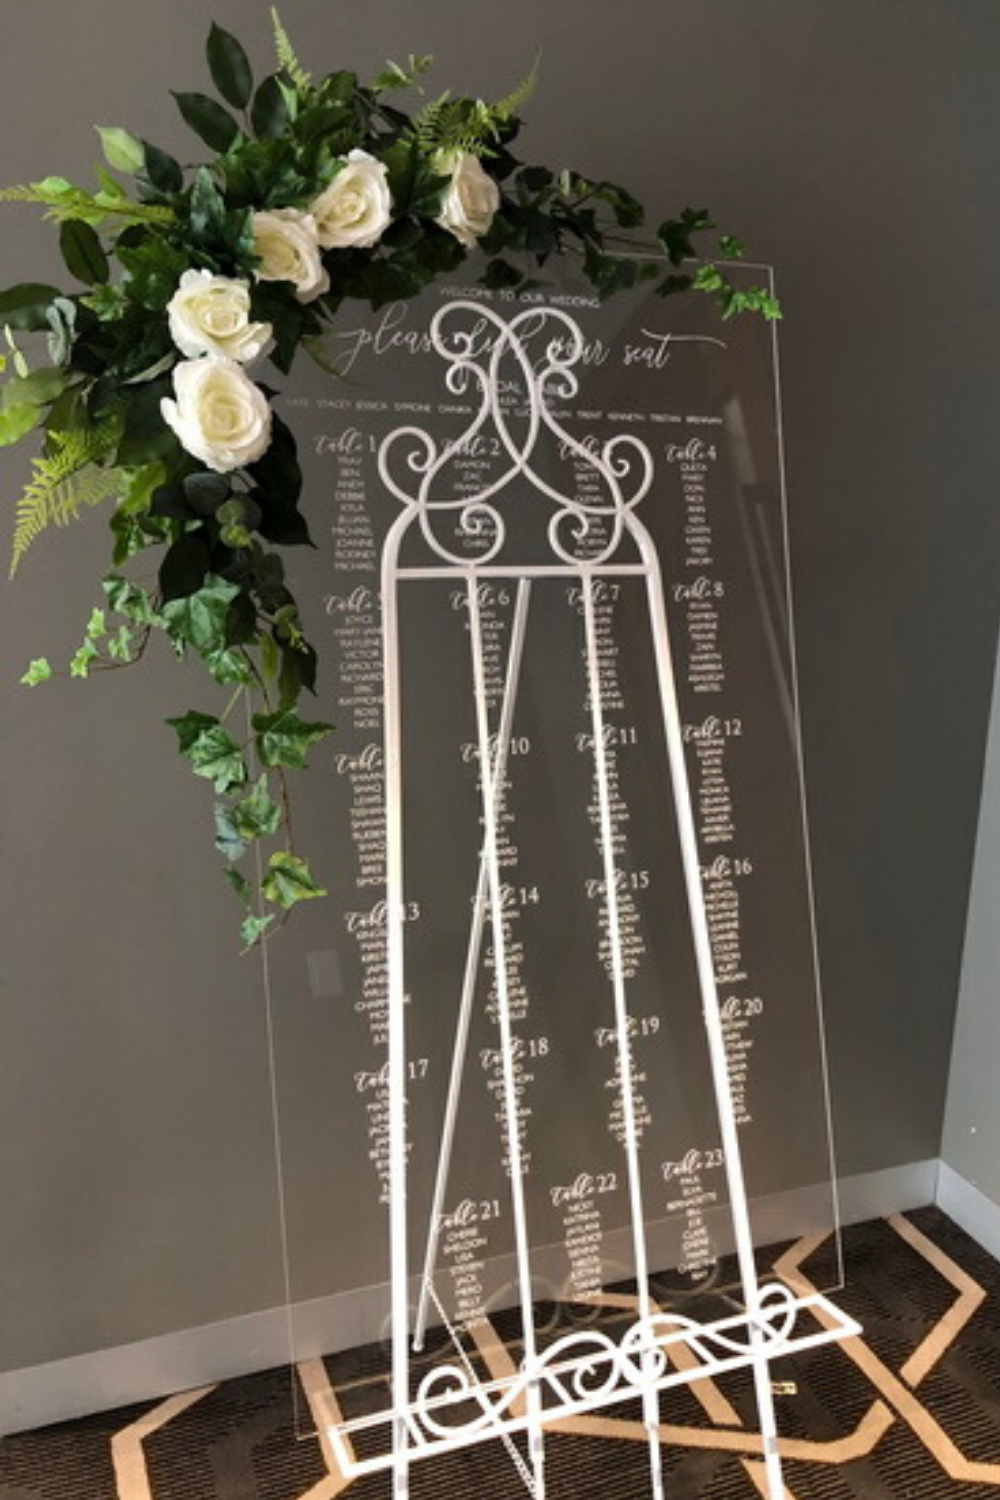 Wedding Decorations & Event Styling Gallery in 2020